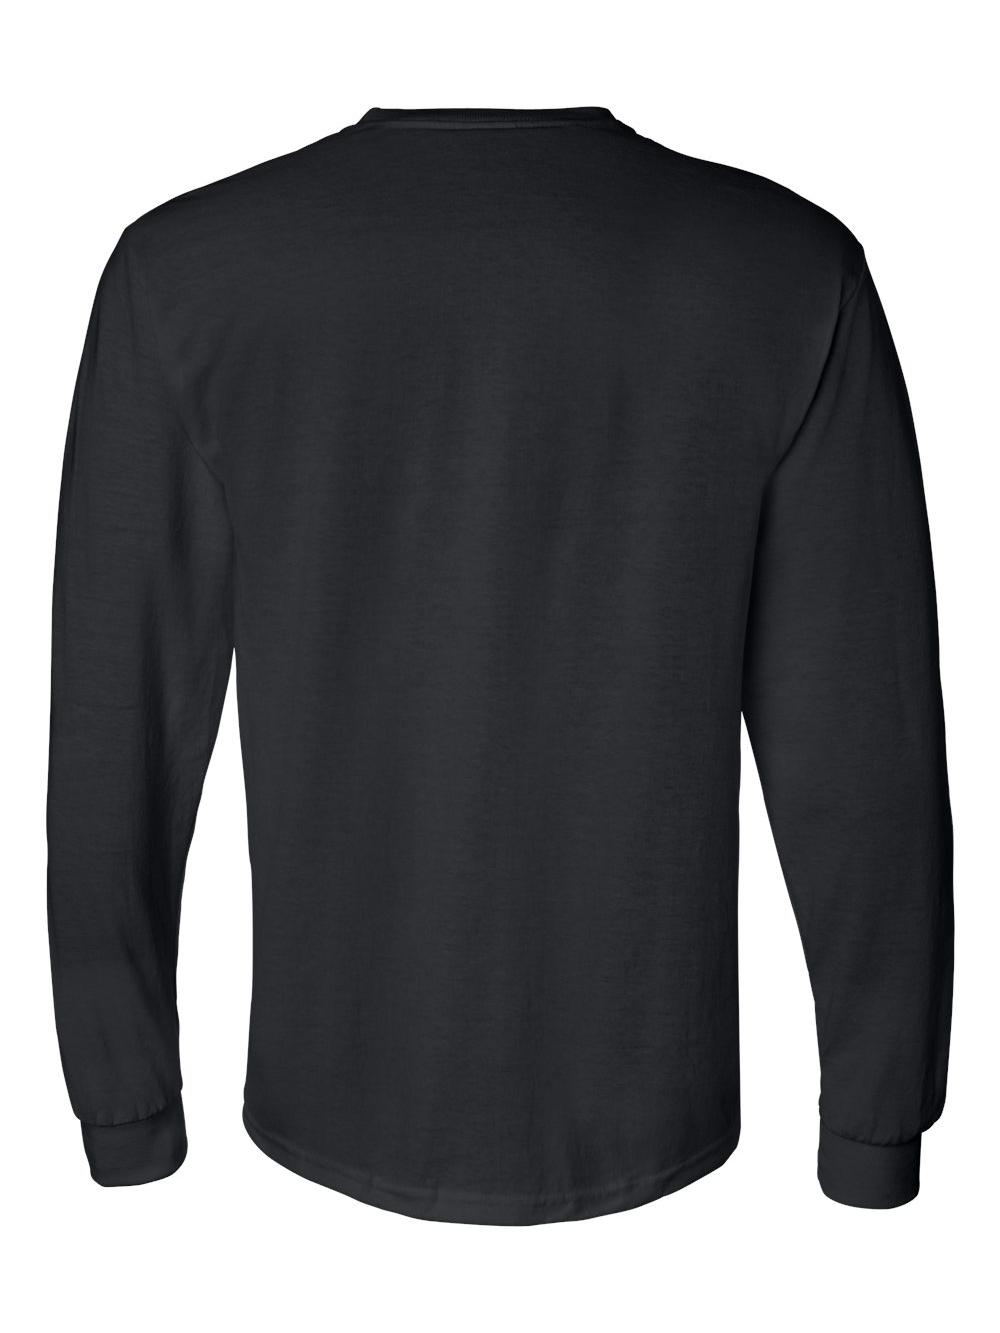 Gildan-DryBlend-50-50-Long-Sleeve-T-Shirt-8400 thumbnail 7